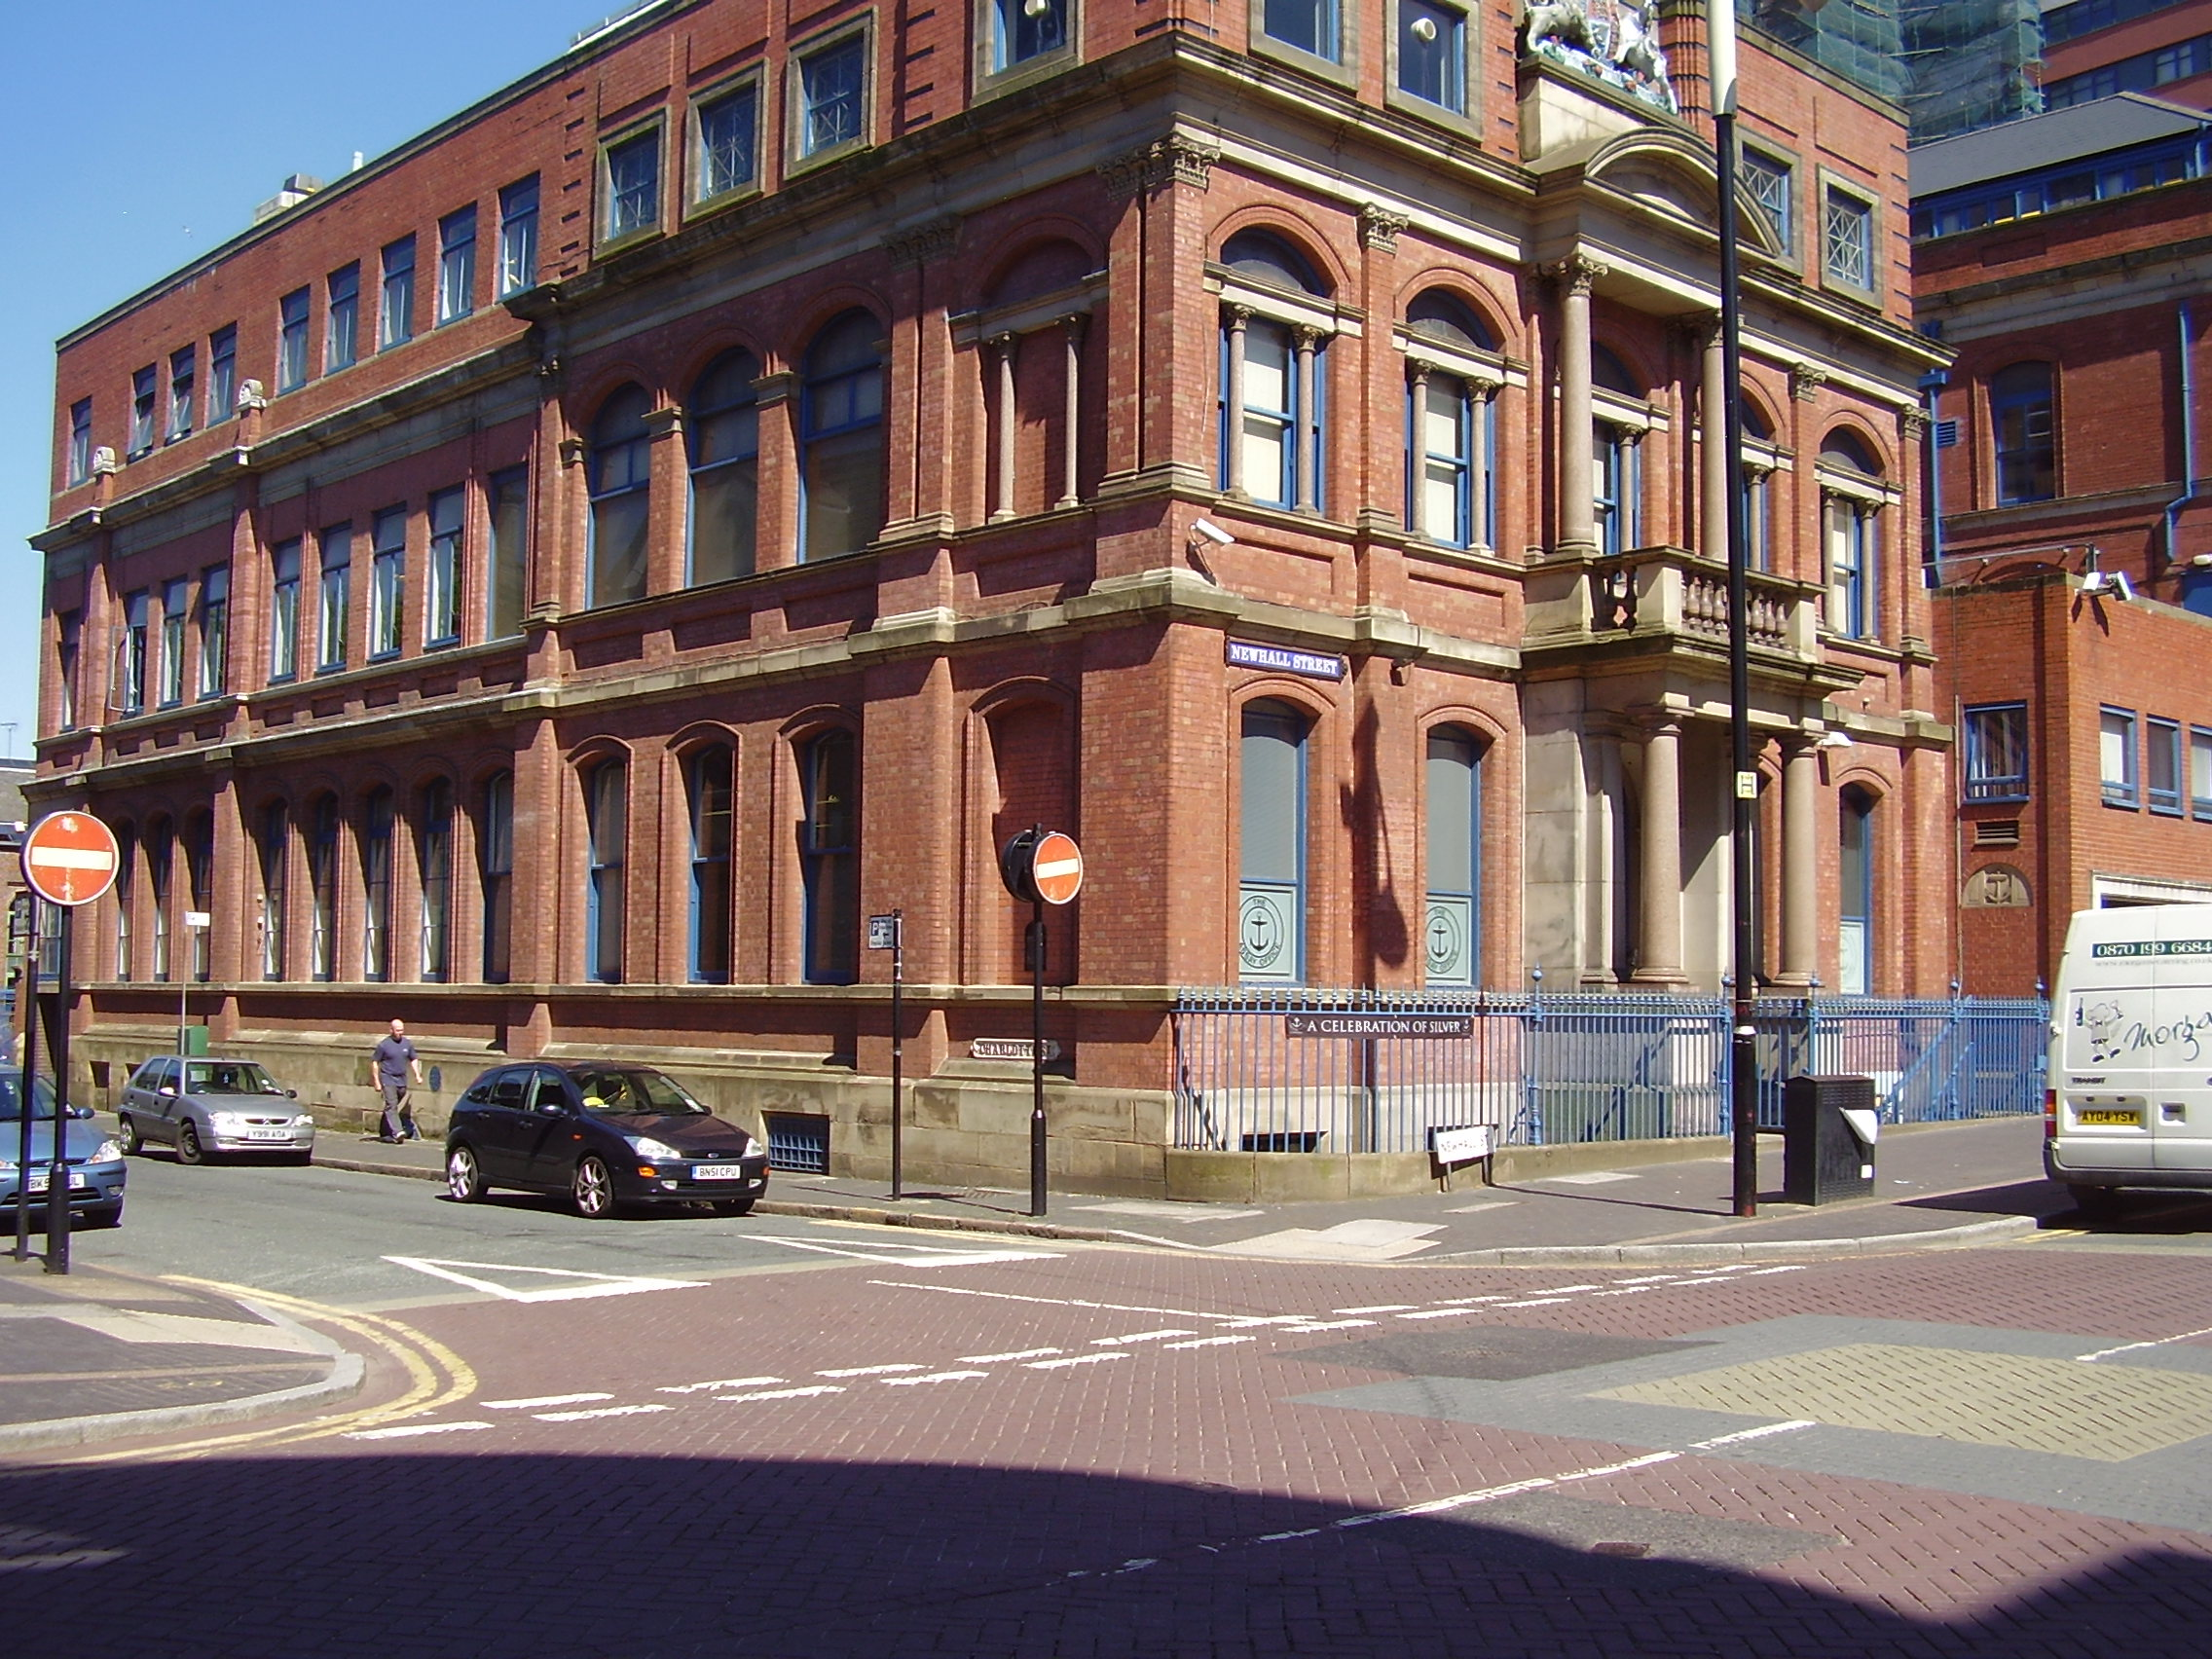 Photo 2008 The Birmingham Assay Office Built 1773 Newhall Street, Jewellery Quarter Birmingham